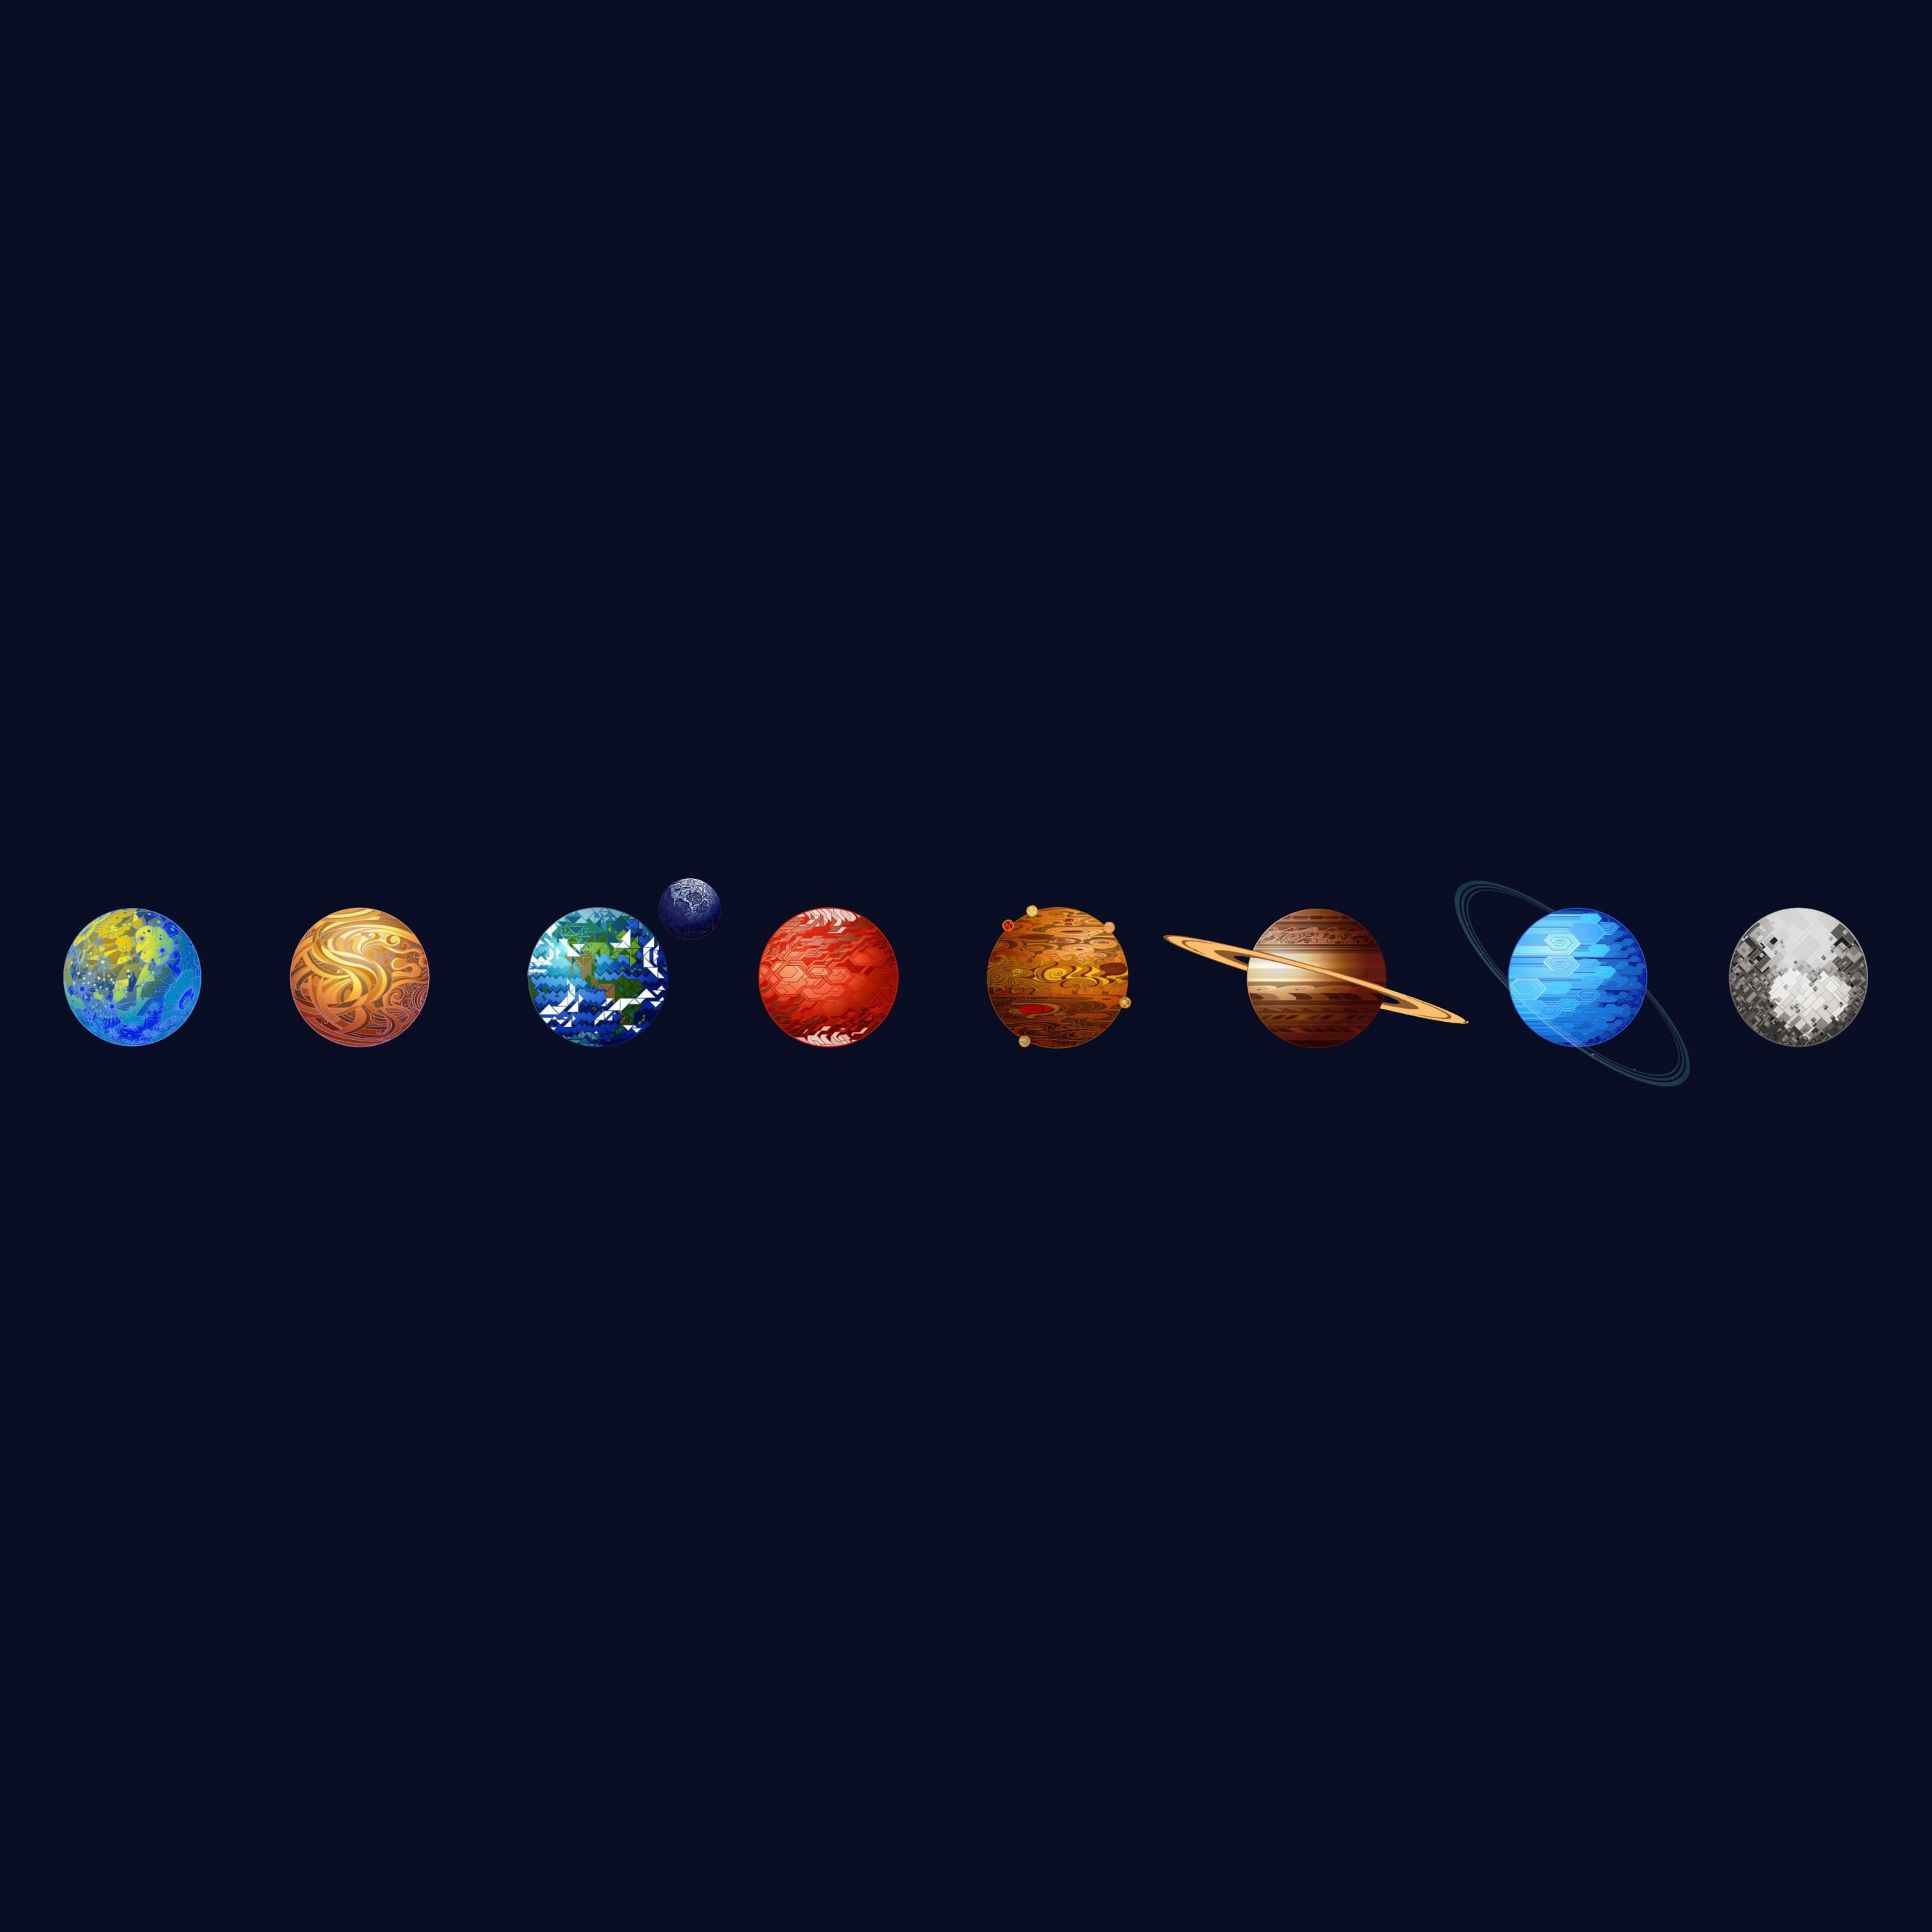 Solar System Wallpaper for Apple iPhone 6 Plus